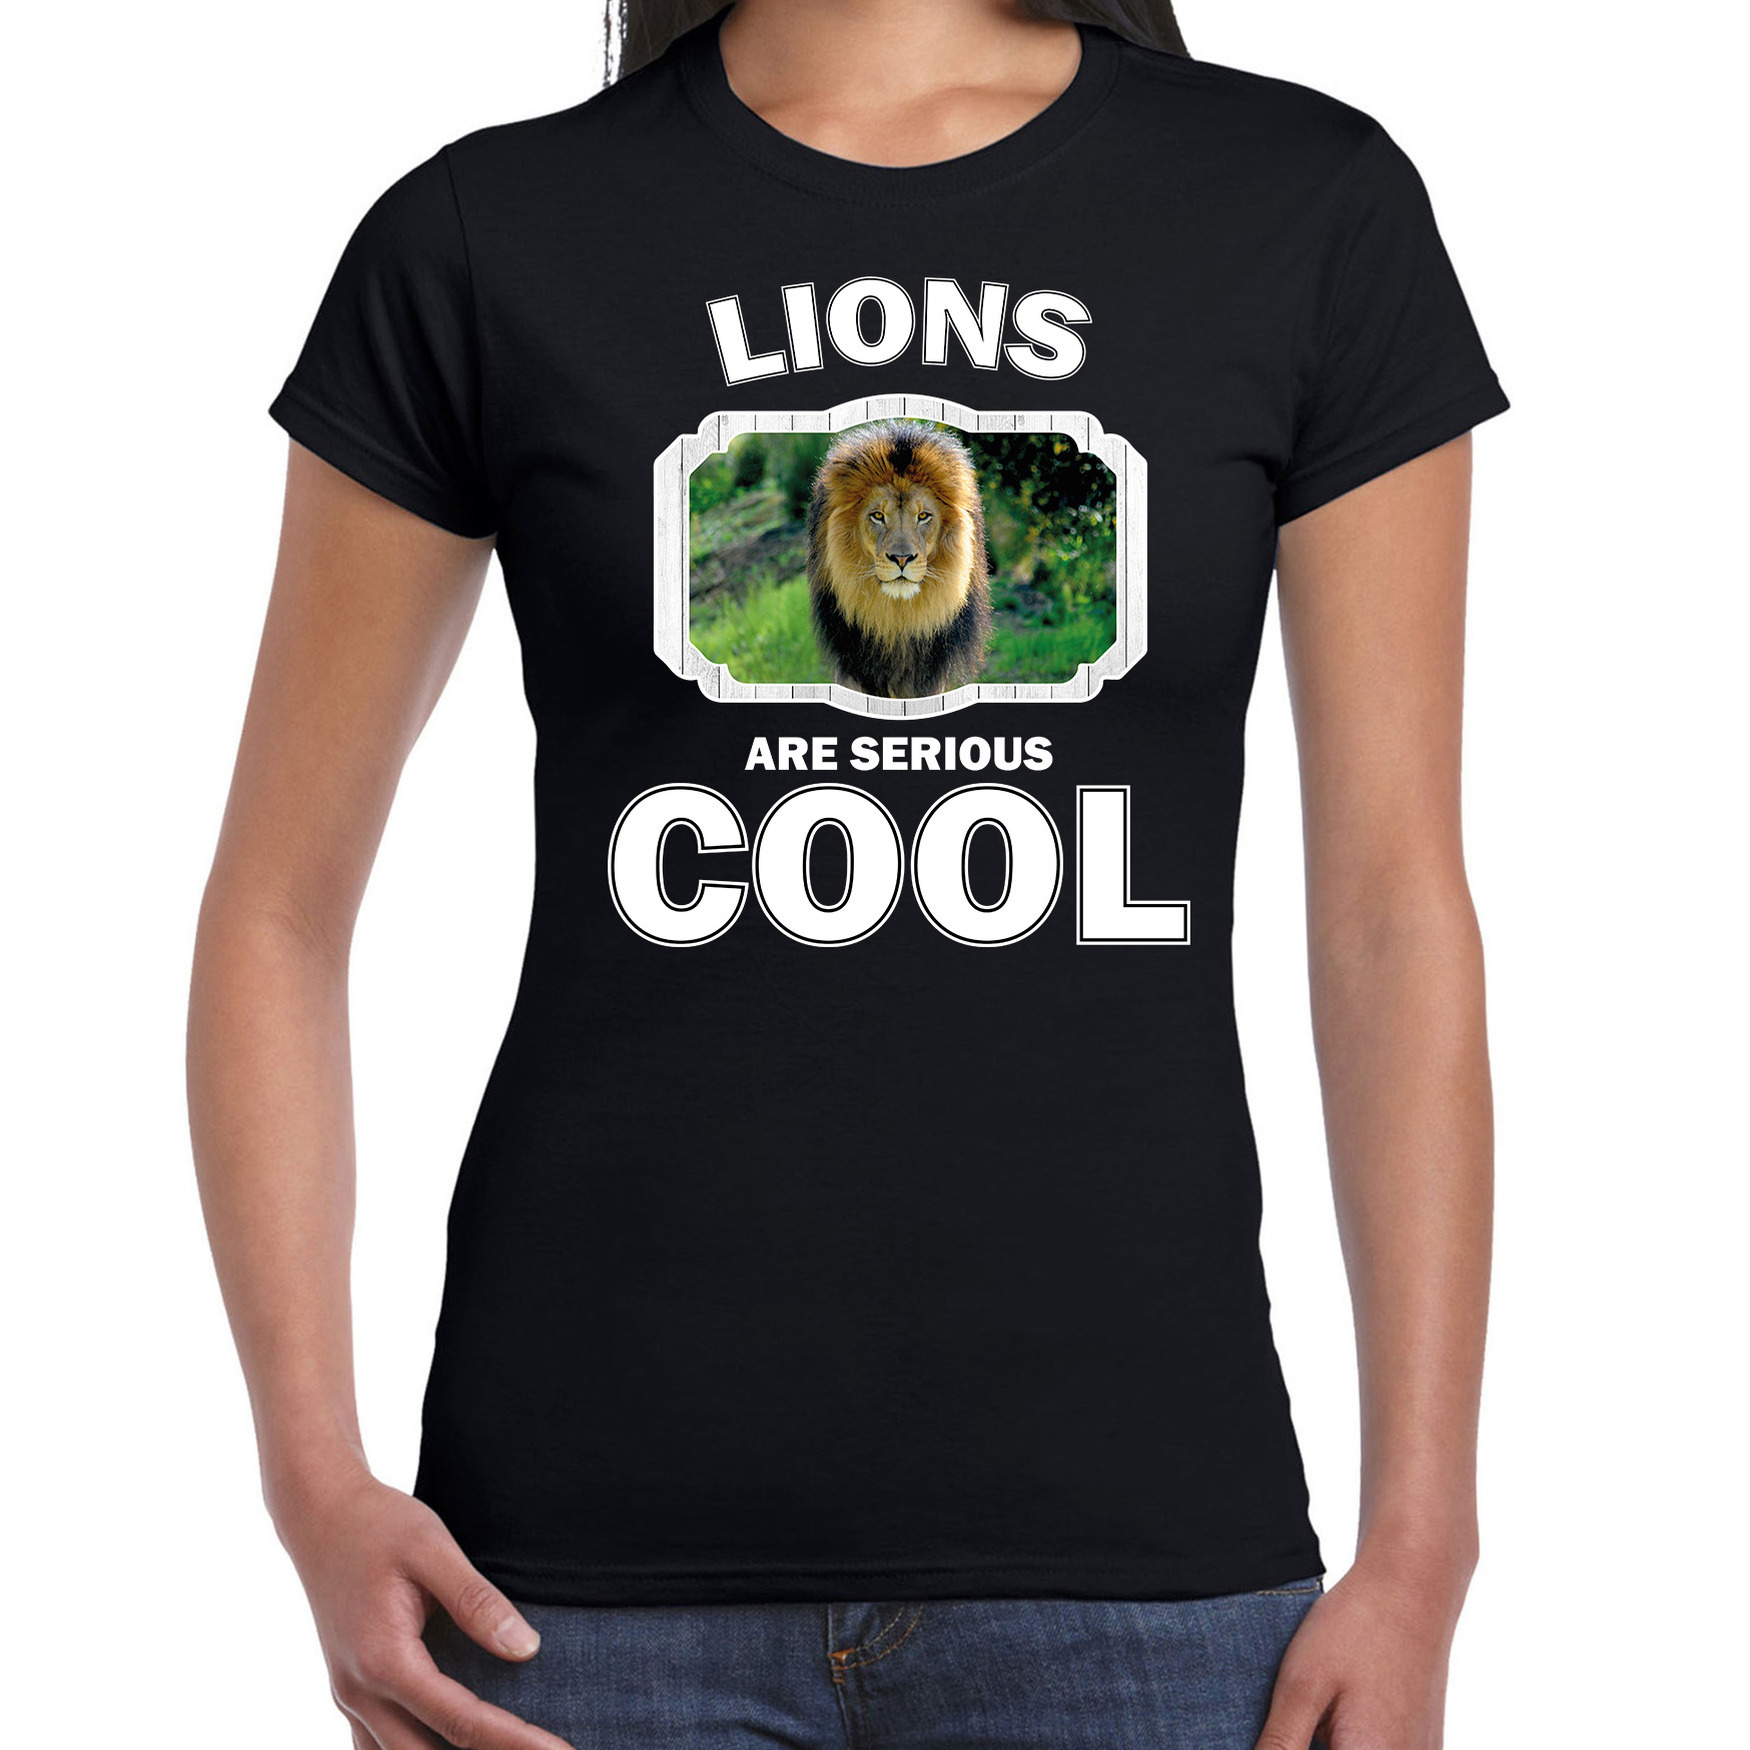 T-shirt lions are serious cool zwart dames - leeuwen/ leeuw shirt